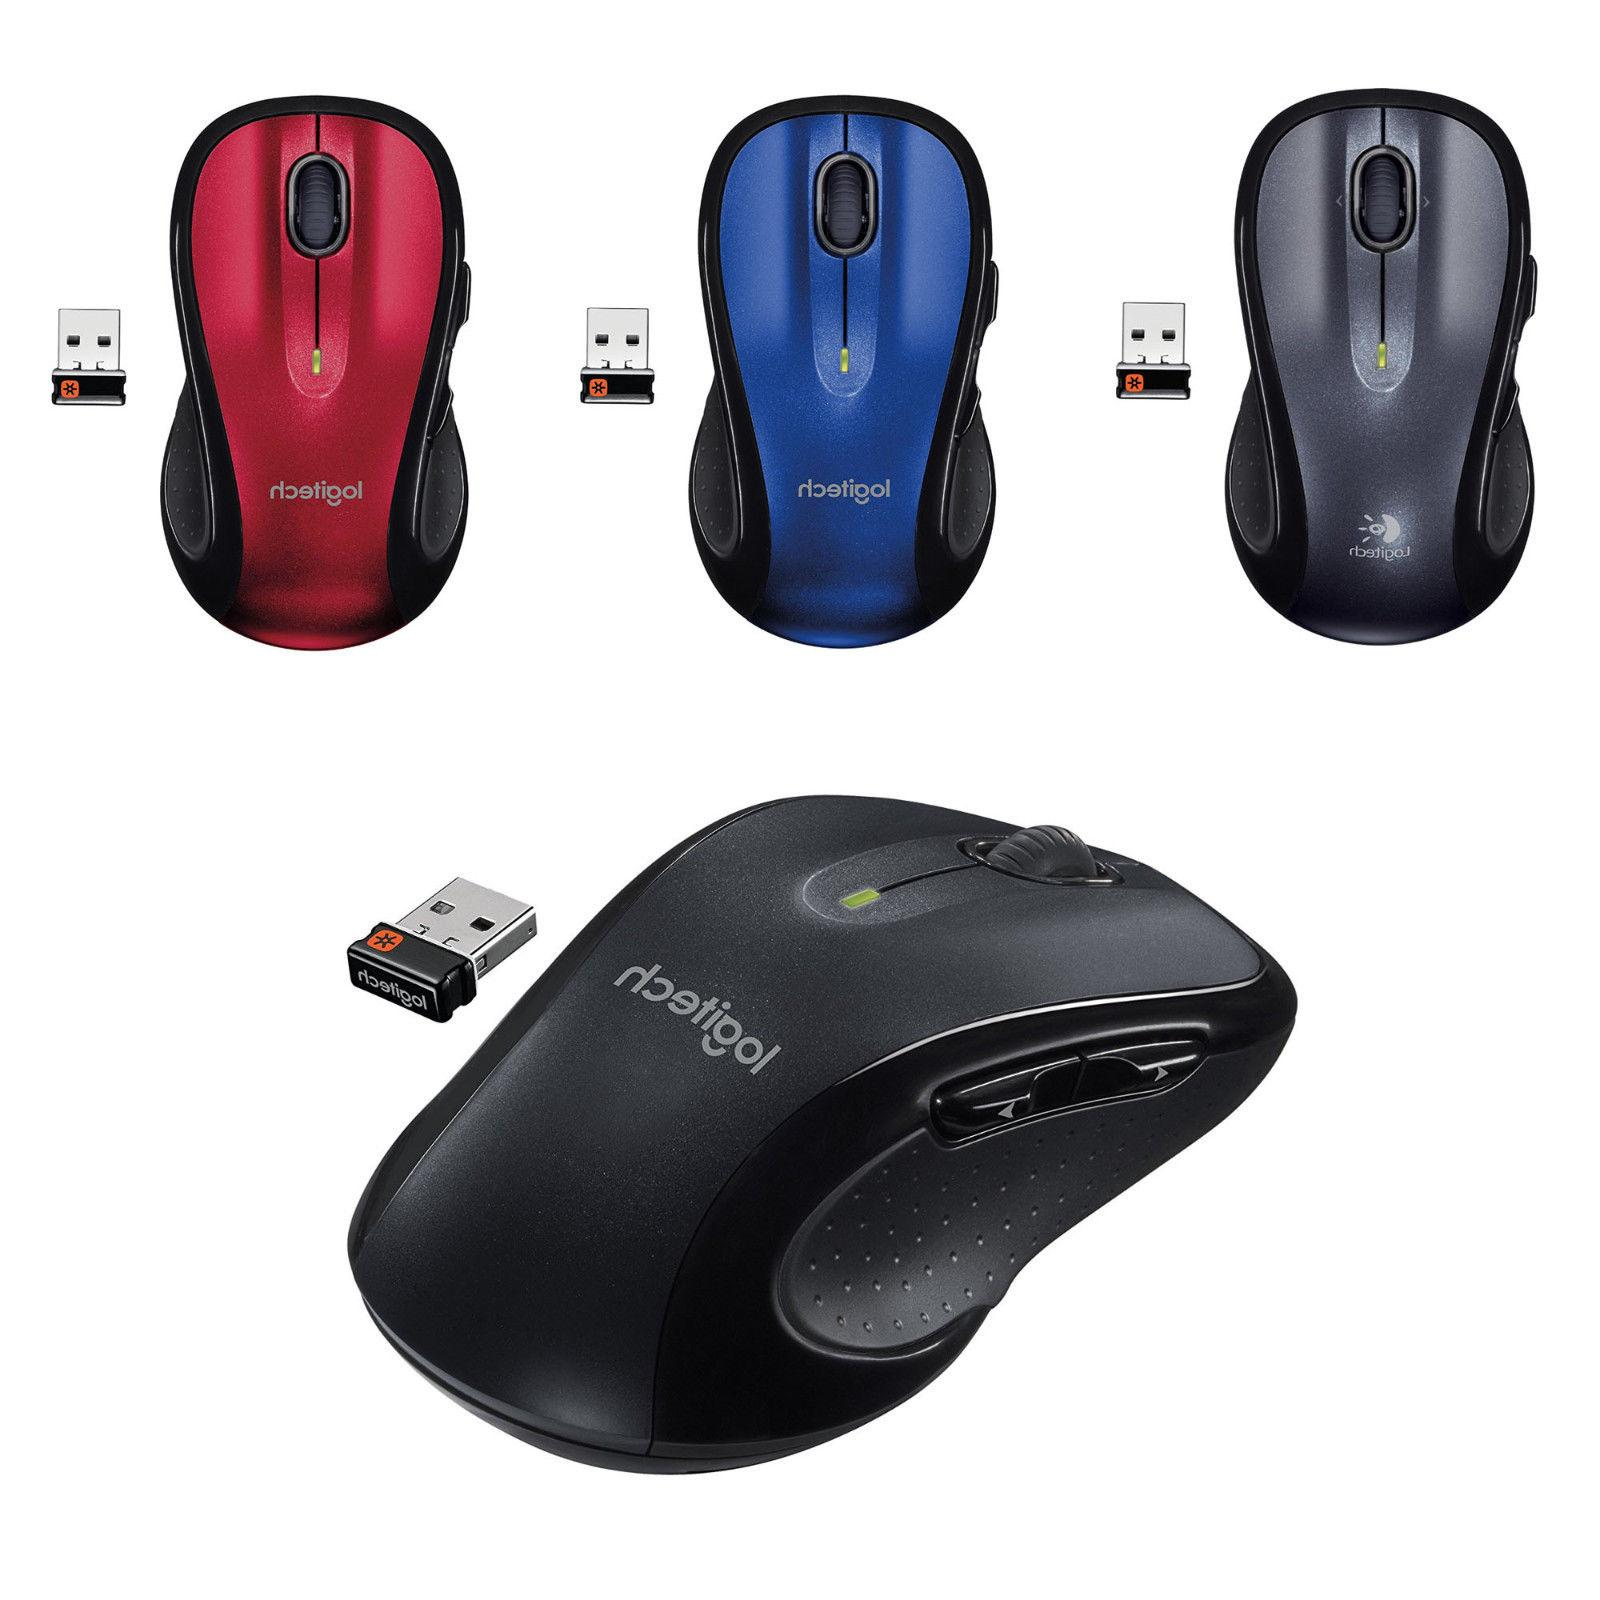 Logitech M510 Wireless Computer Mouse – Comfortable Shape